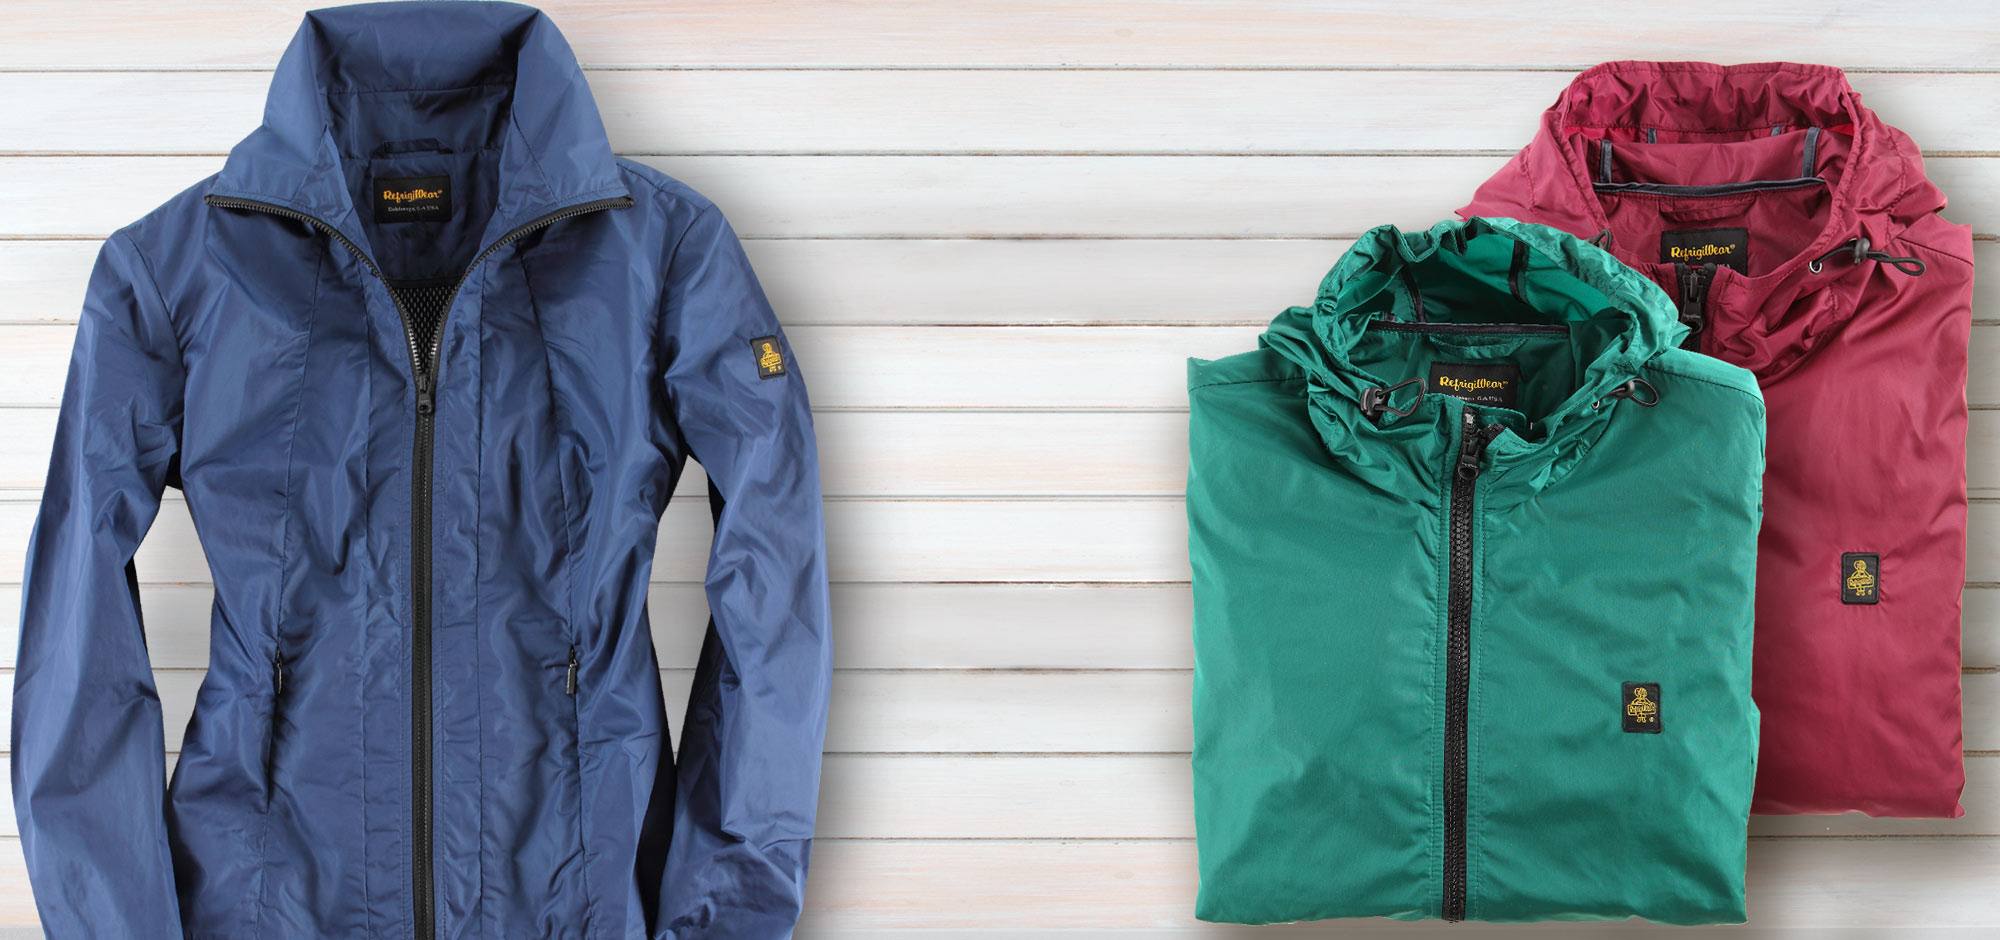 Waterproof, breathable and packable